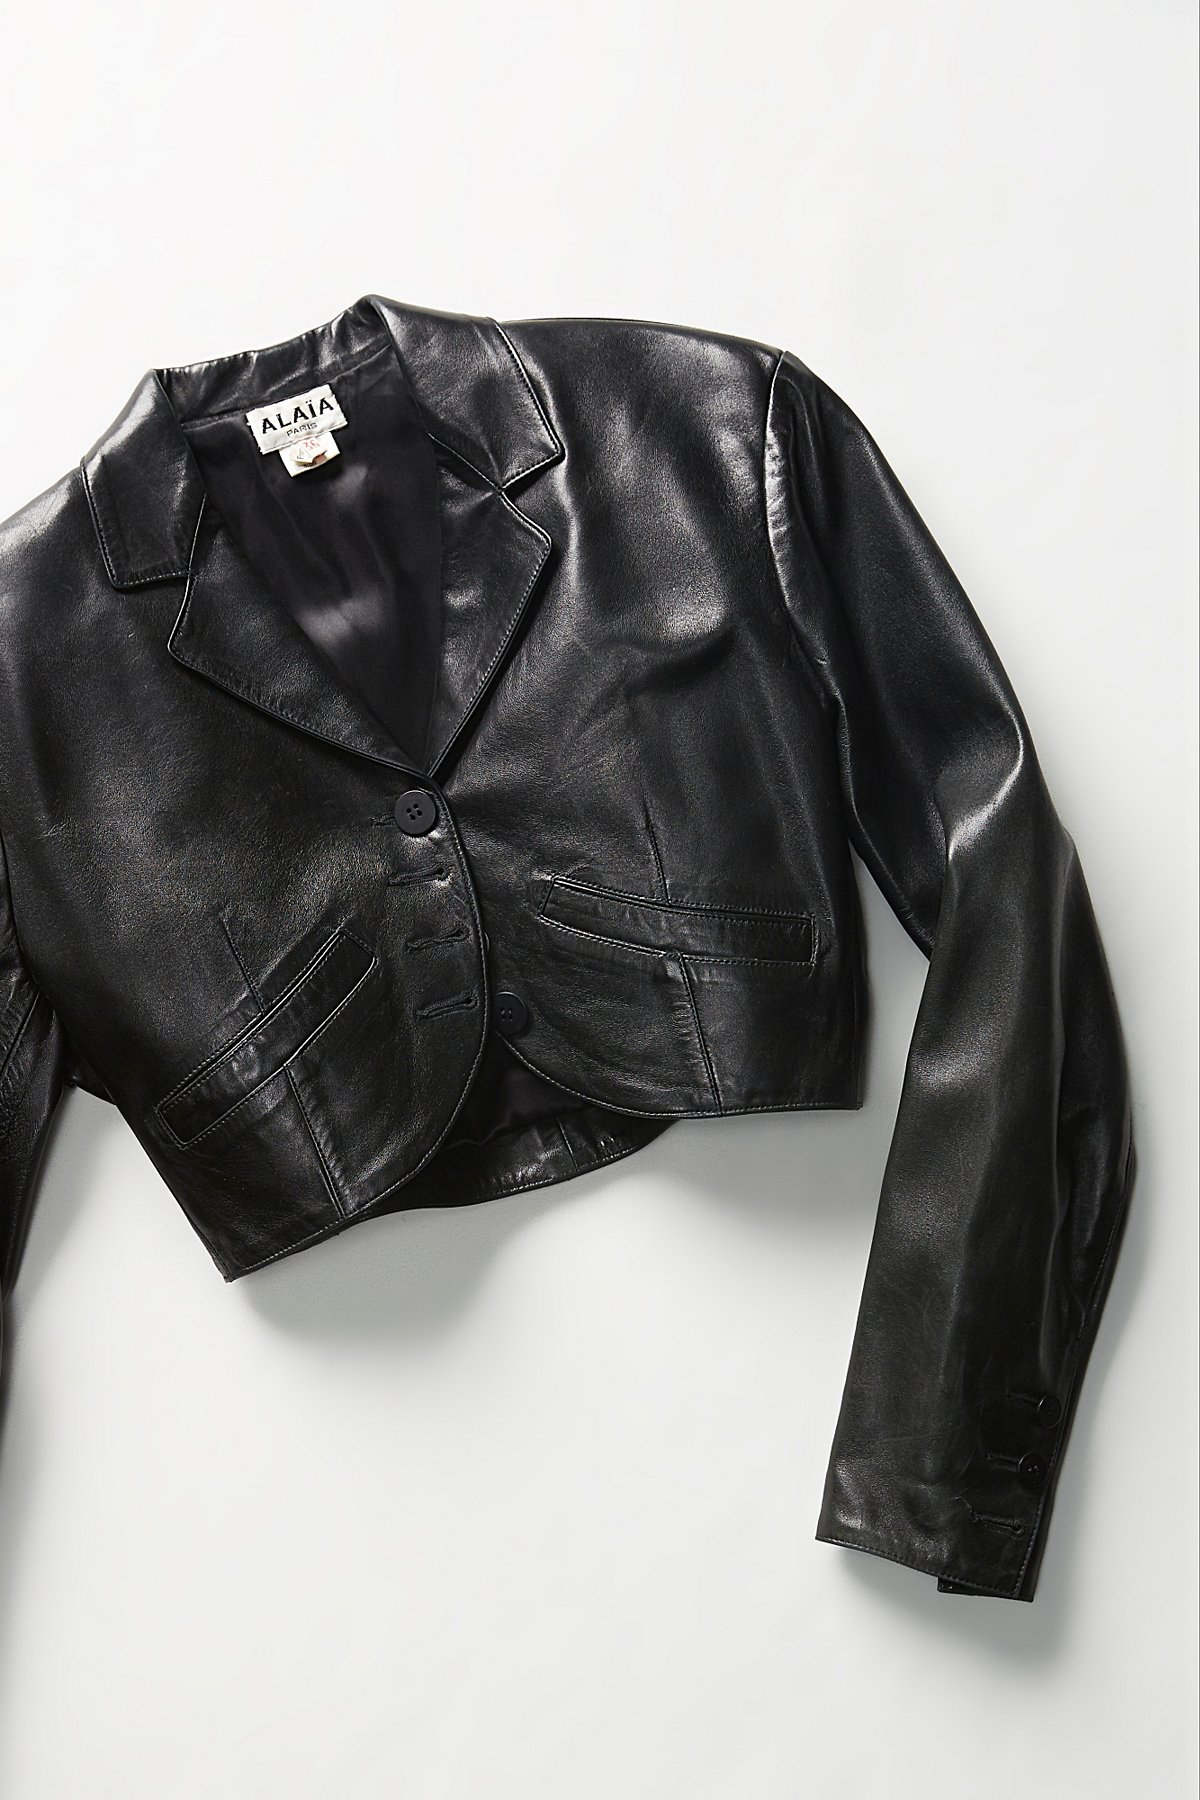 Vintage 1980s Alaia Cropped Leather Jacket